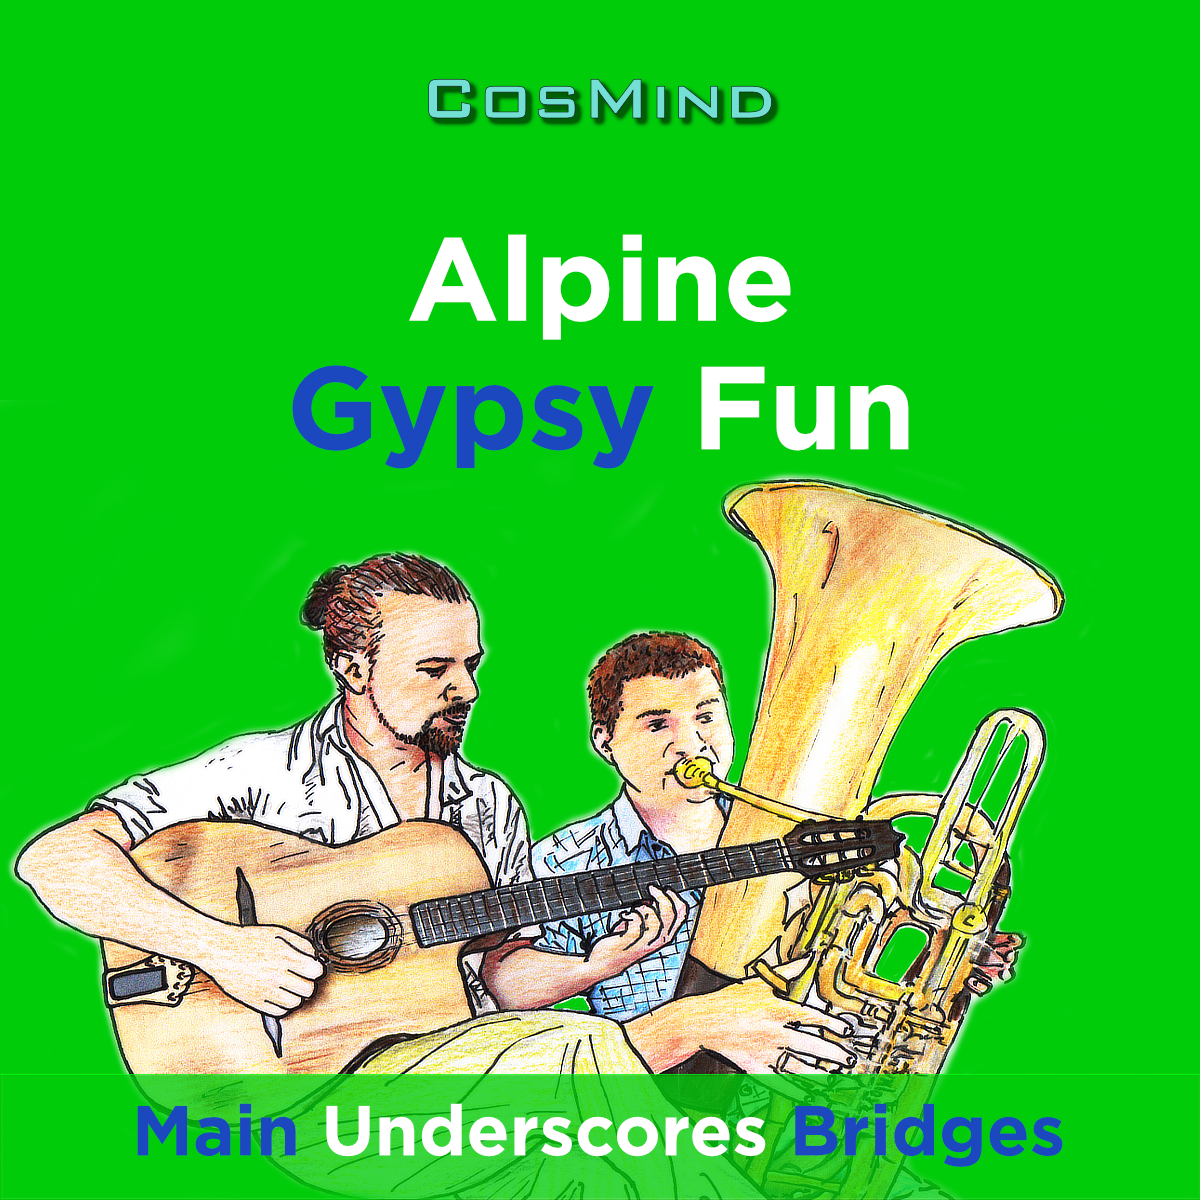 Alpine Gypsy Fun - Main - Underscores - Bridges